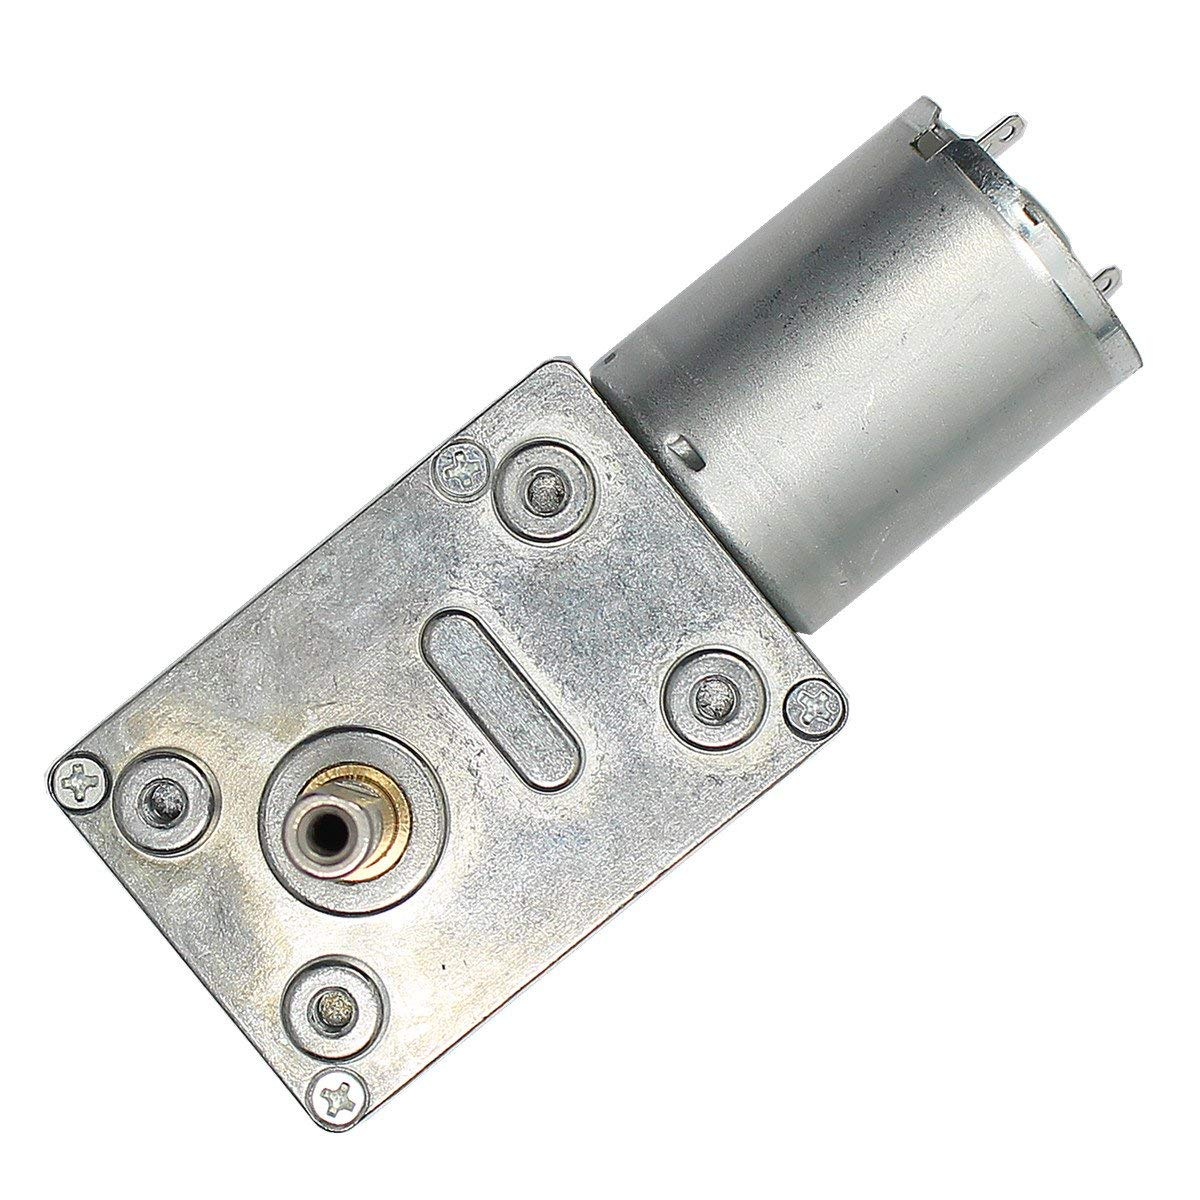 OLSUS DC 6V 30RPM Square Type Mini DC Motor with Gear Torque Locking ABS+ Cu + Fe + steel - Silver